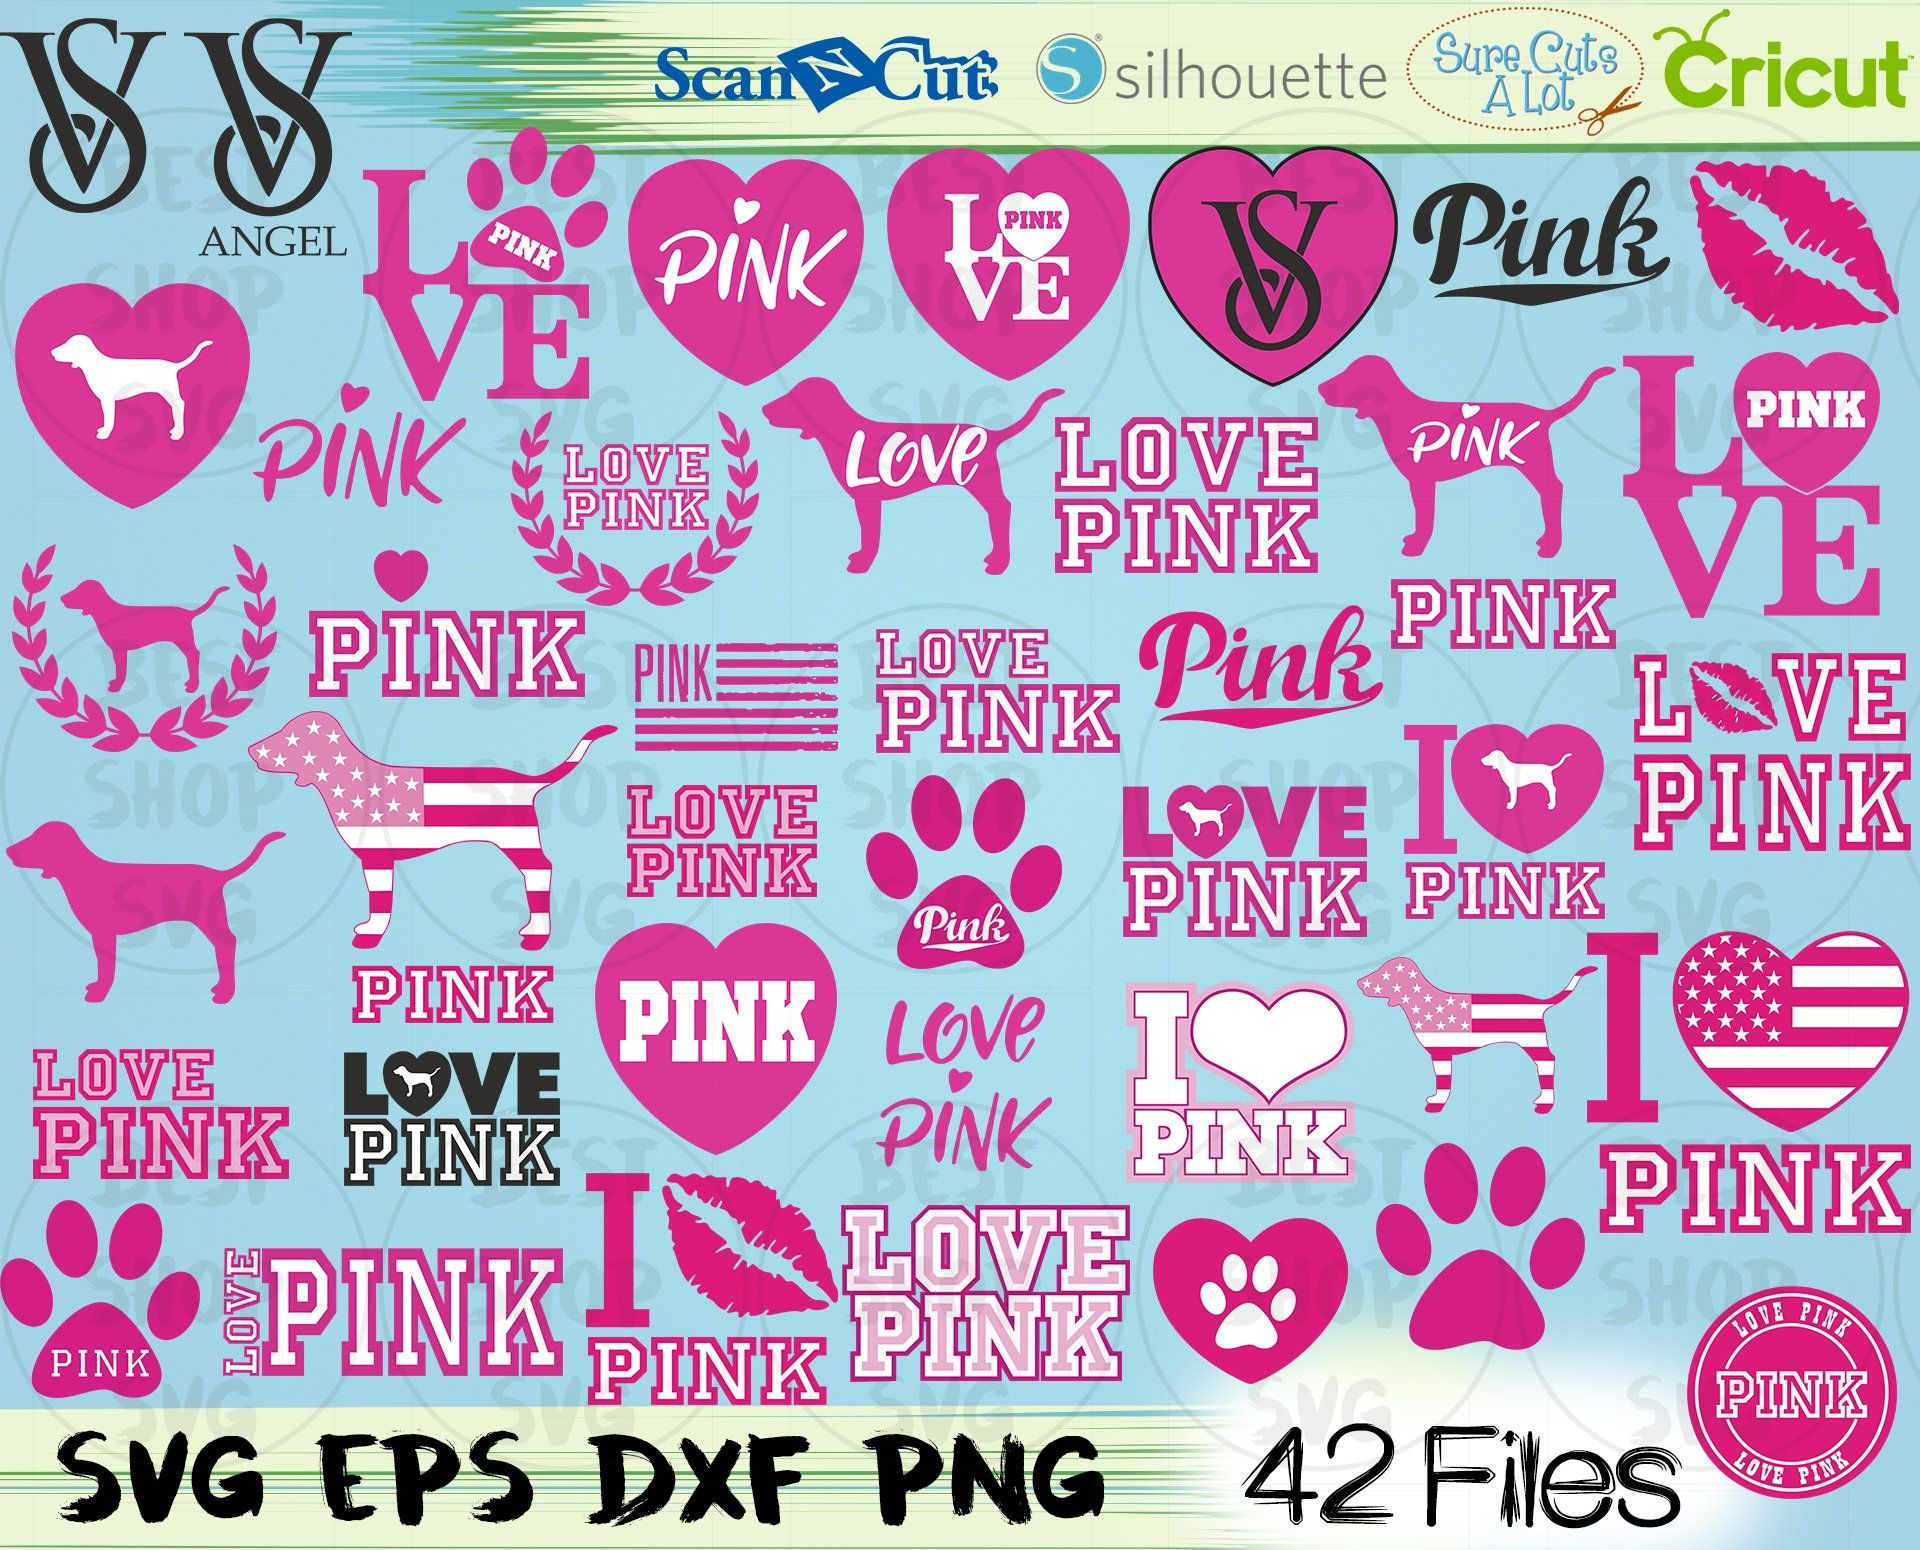 Download Pin by Lindsey Teichman on Svgs (With images) | Print ...